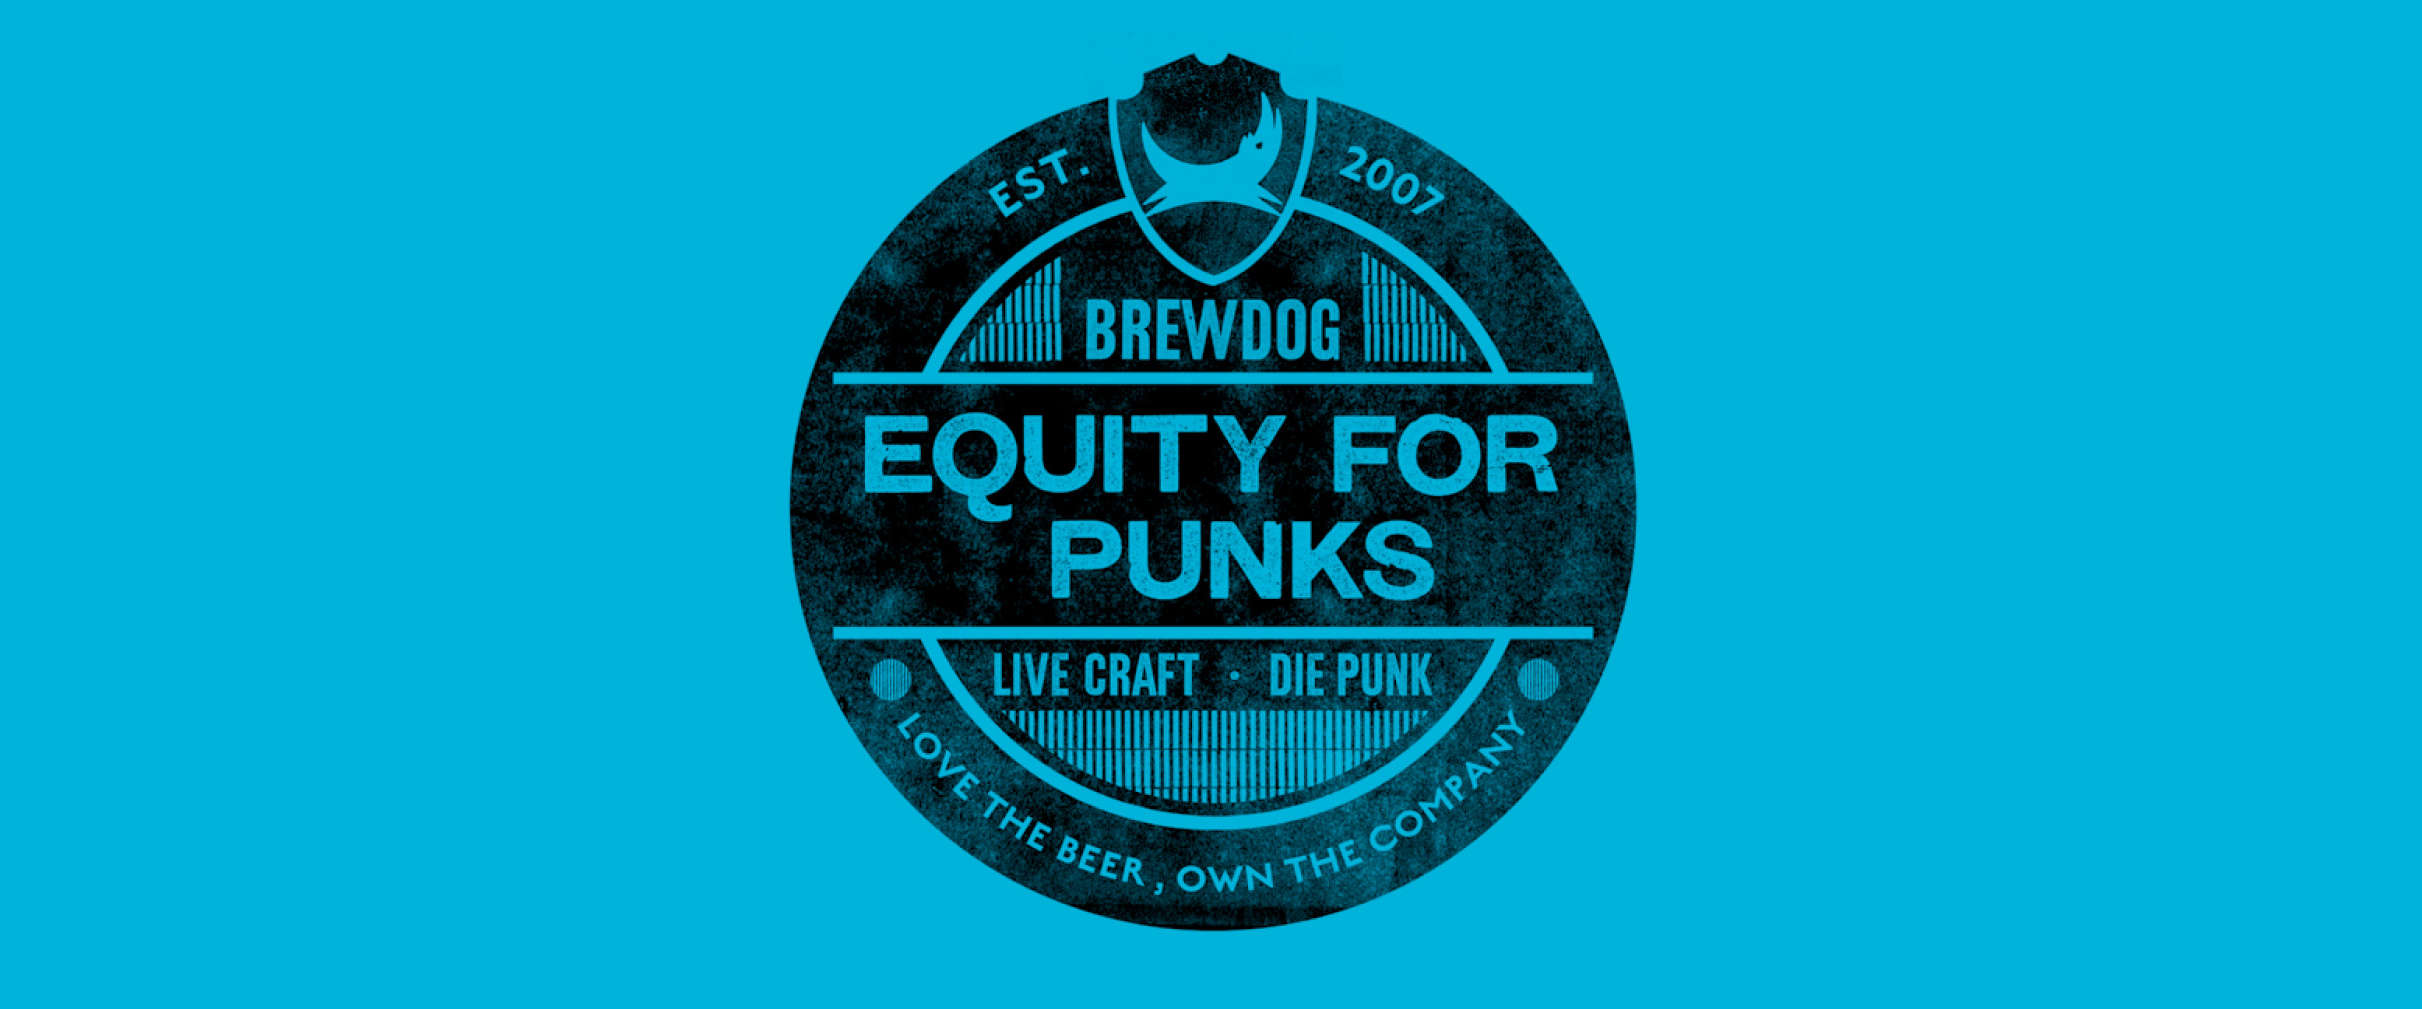 BrewDog – Equity for Punks